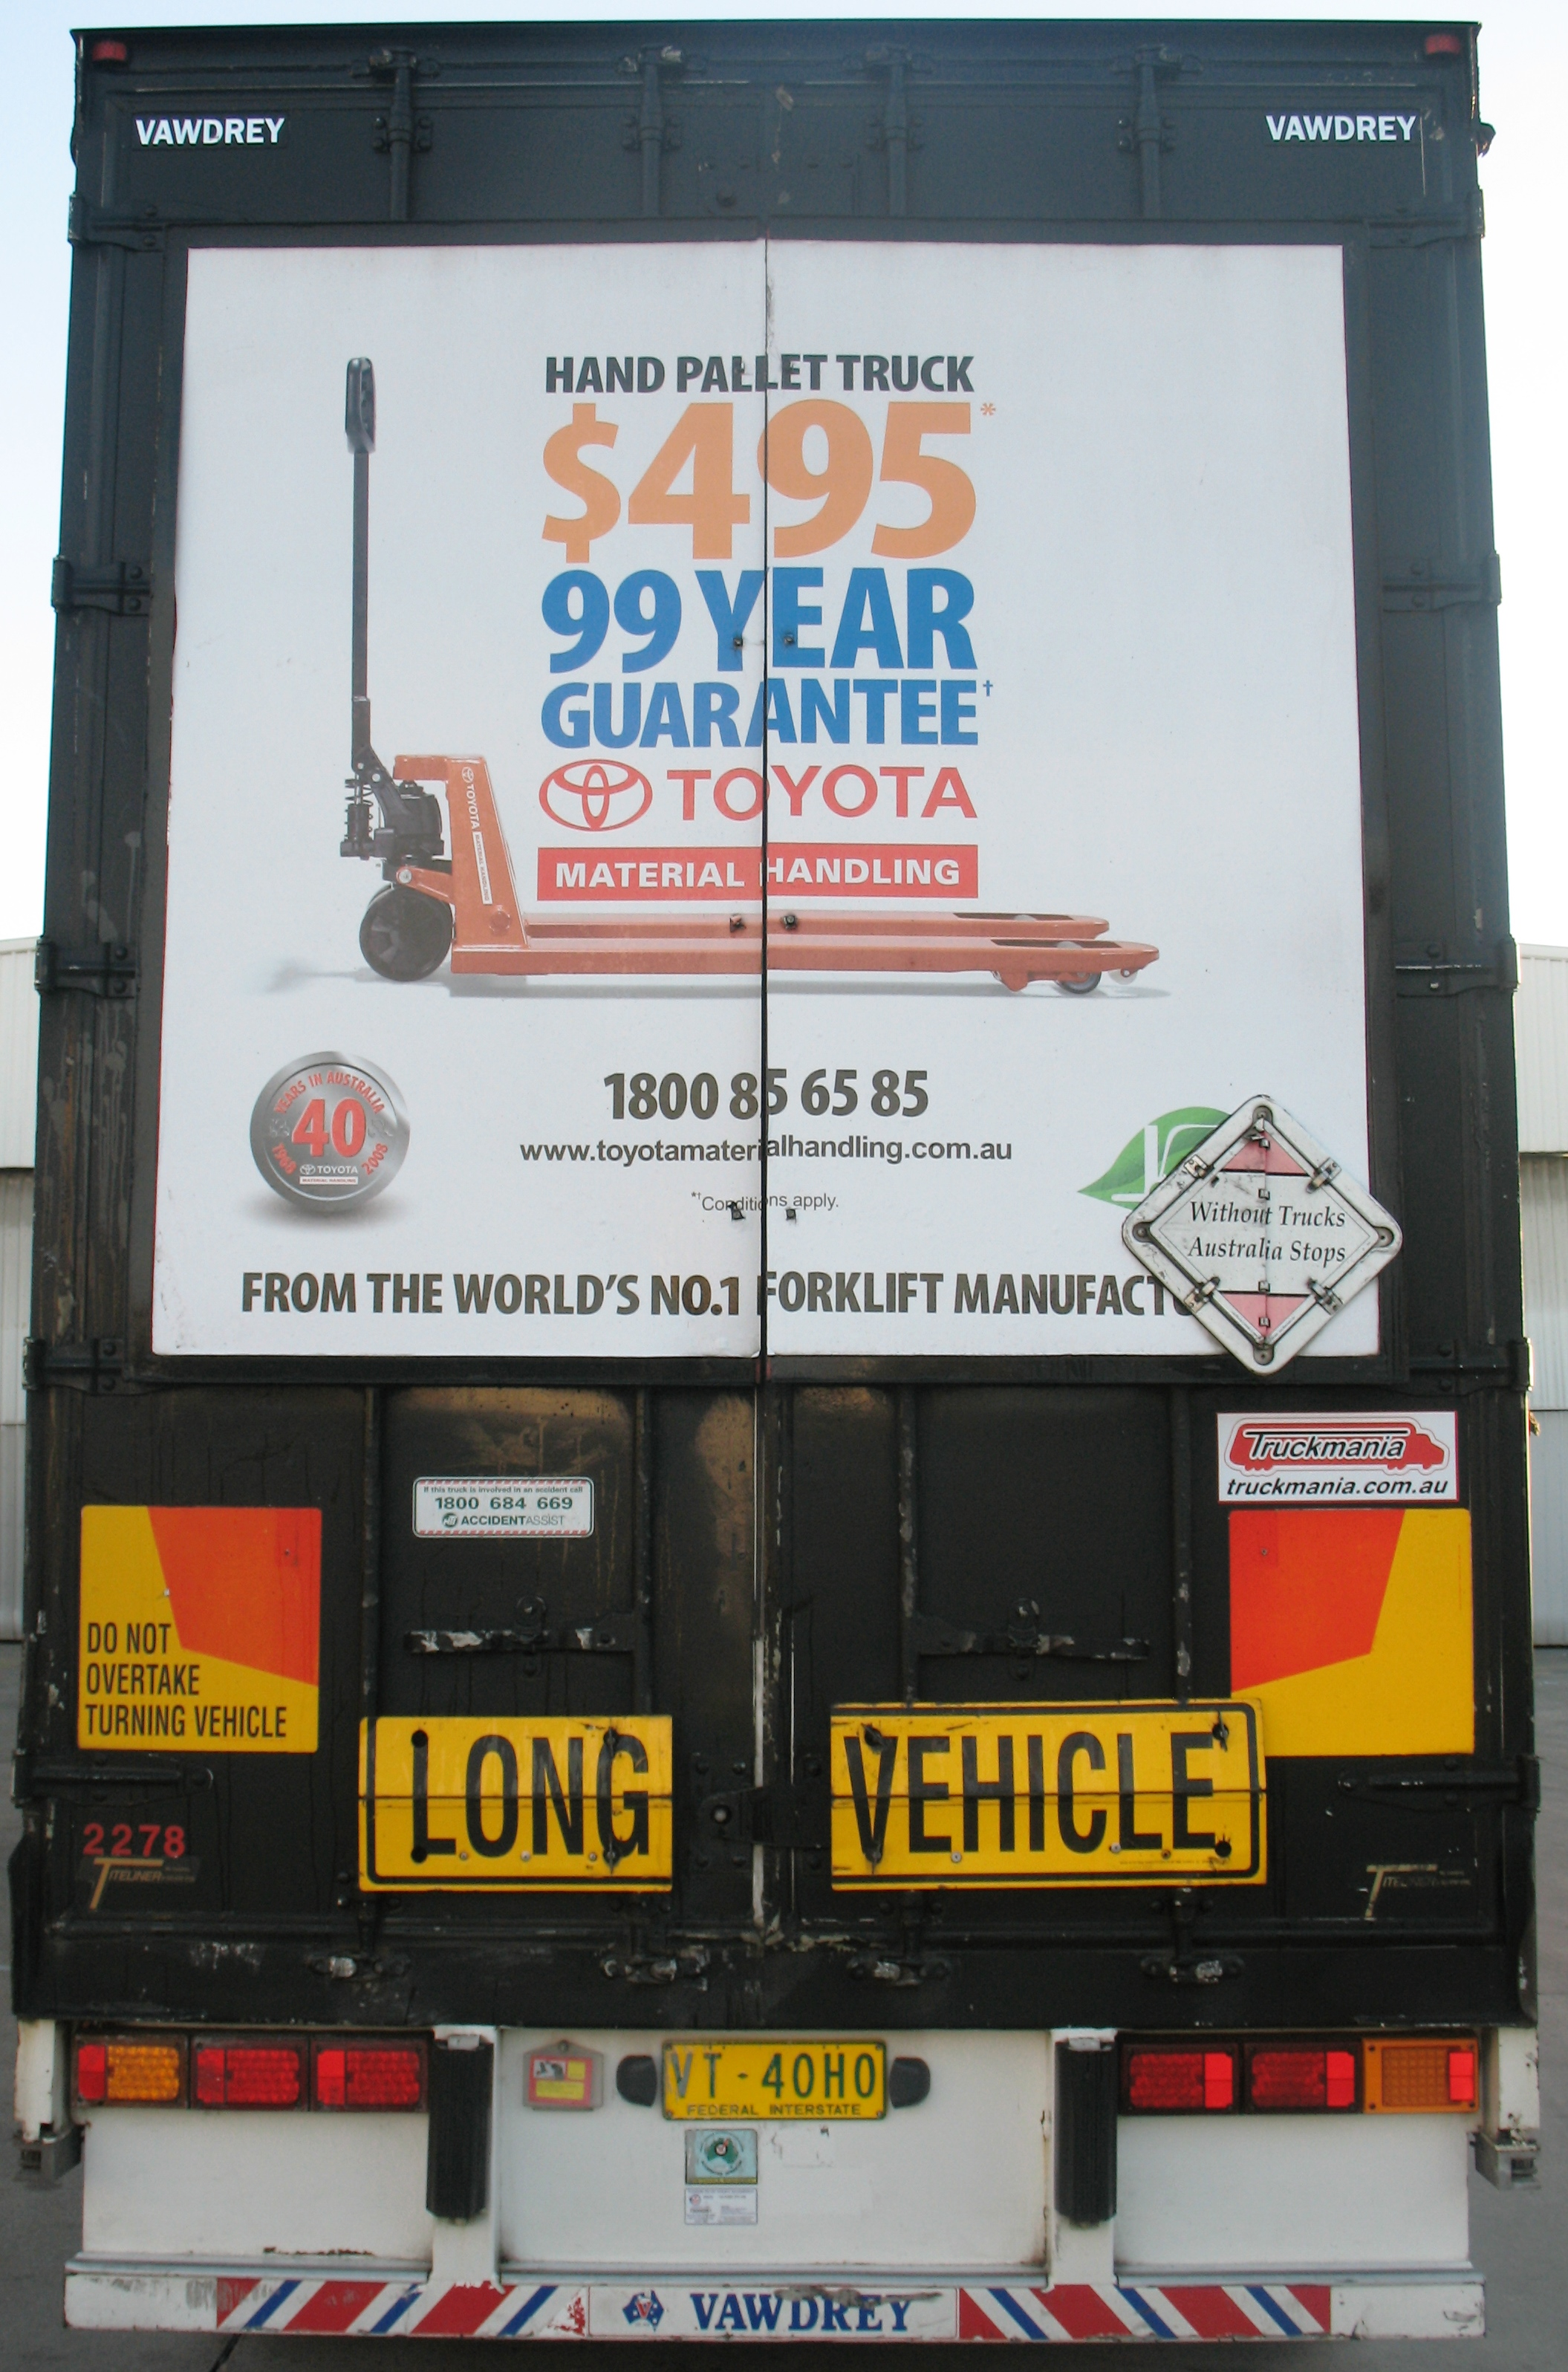 Truck advertising. TMHA Toyota Material Handling Australia TruckBack on First Fleet B Double Long Vehicle. Frame. Hand pallet truck campaign. Vawdrey.